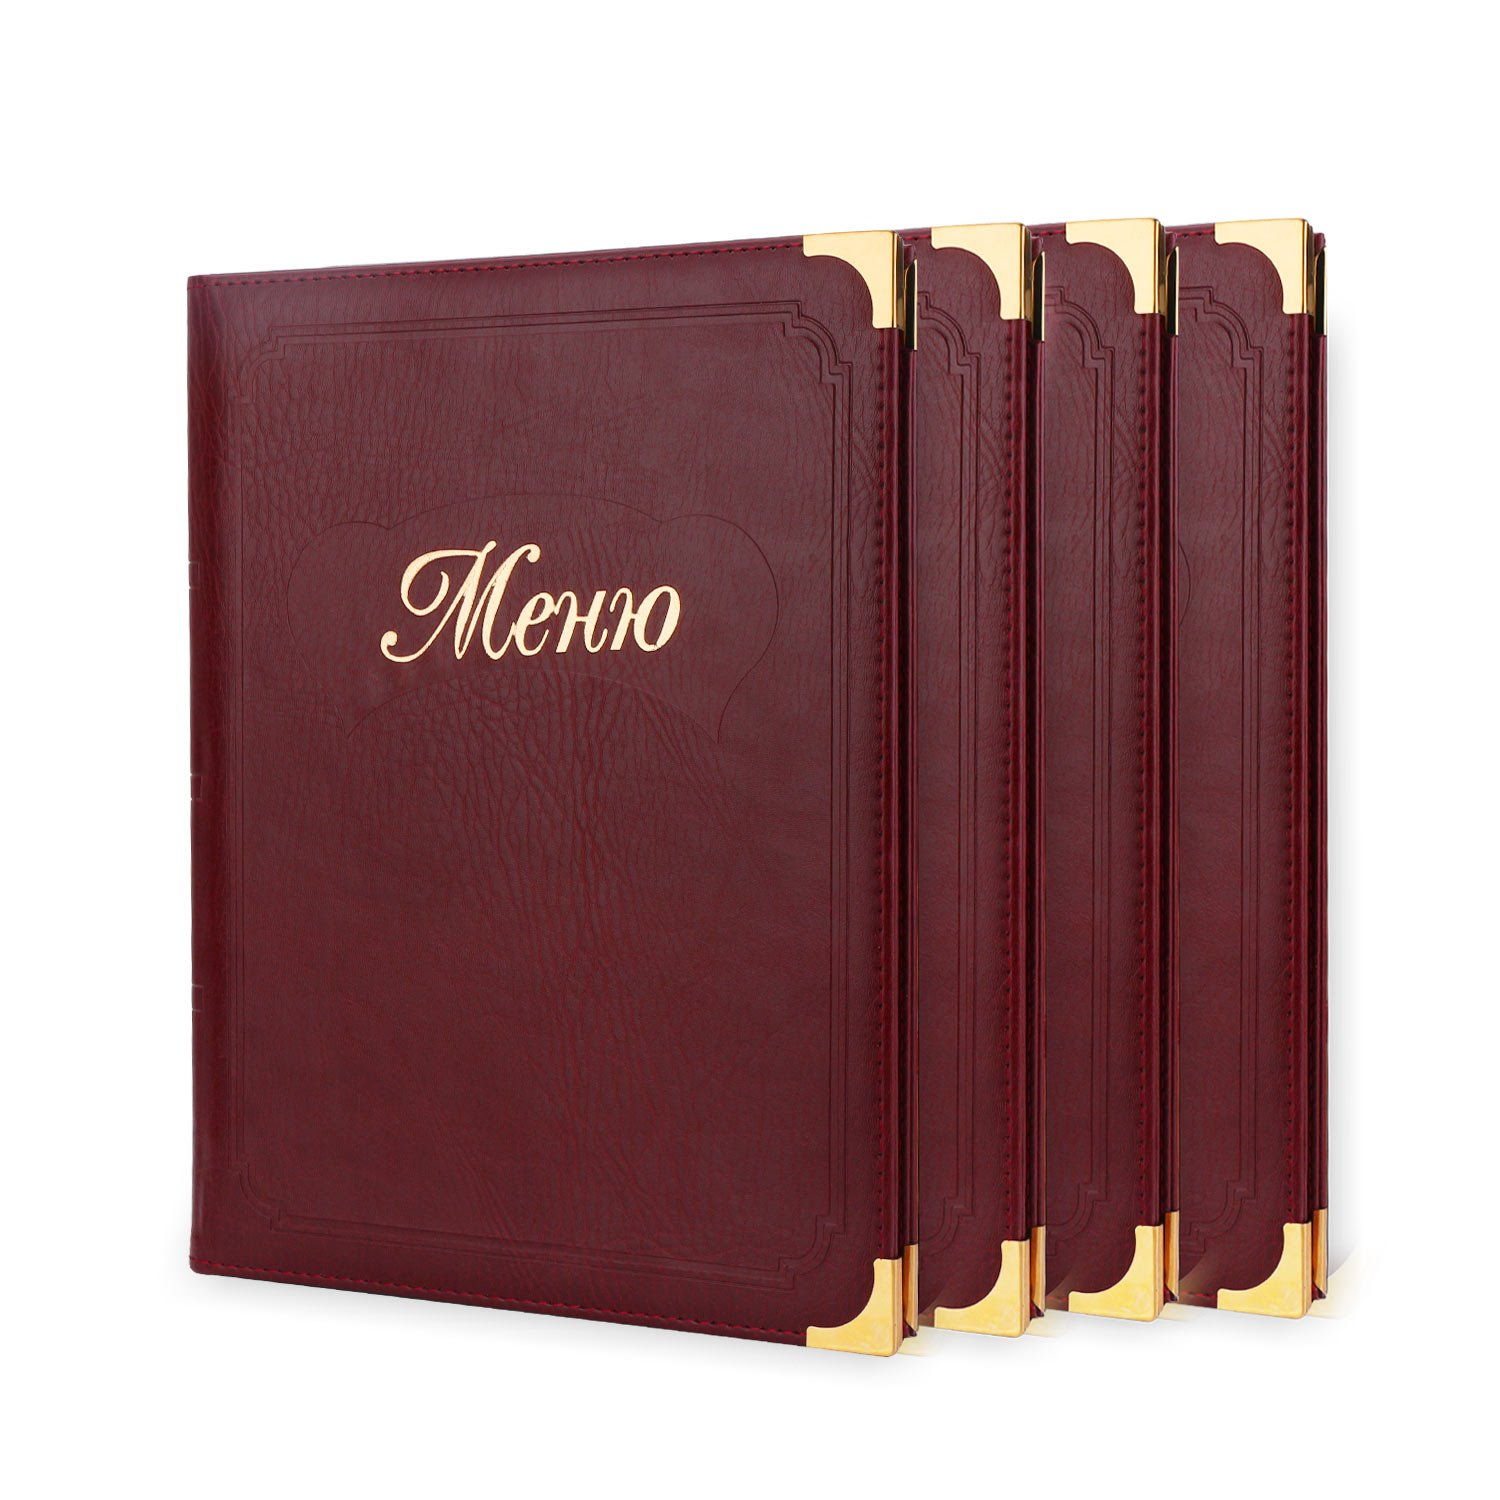 Yescom 30pcs Non-Toxic Menu Covers 8.5x11inches Black Triple Fold Book Style Cafe Bar 3 Pages 6 View BHBUKPPAZINH1695